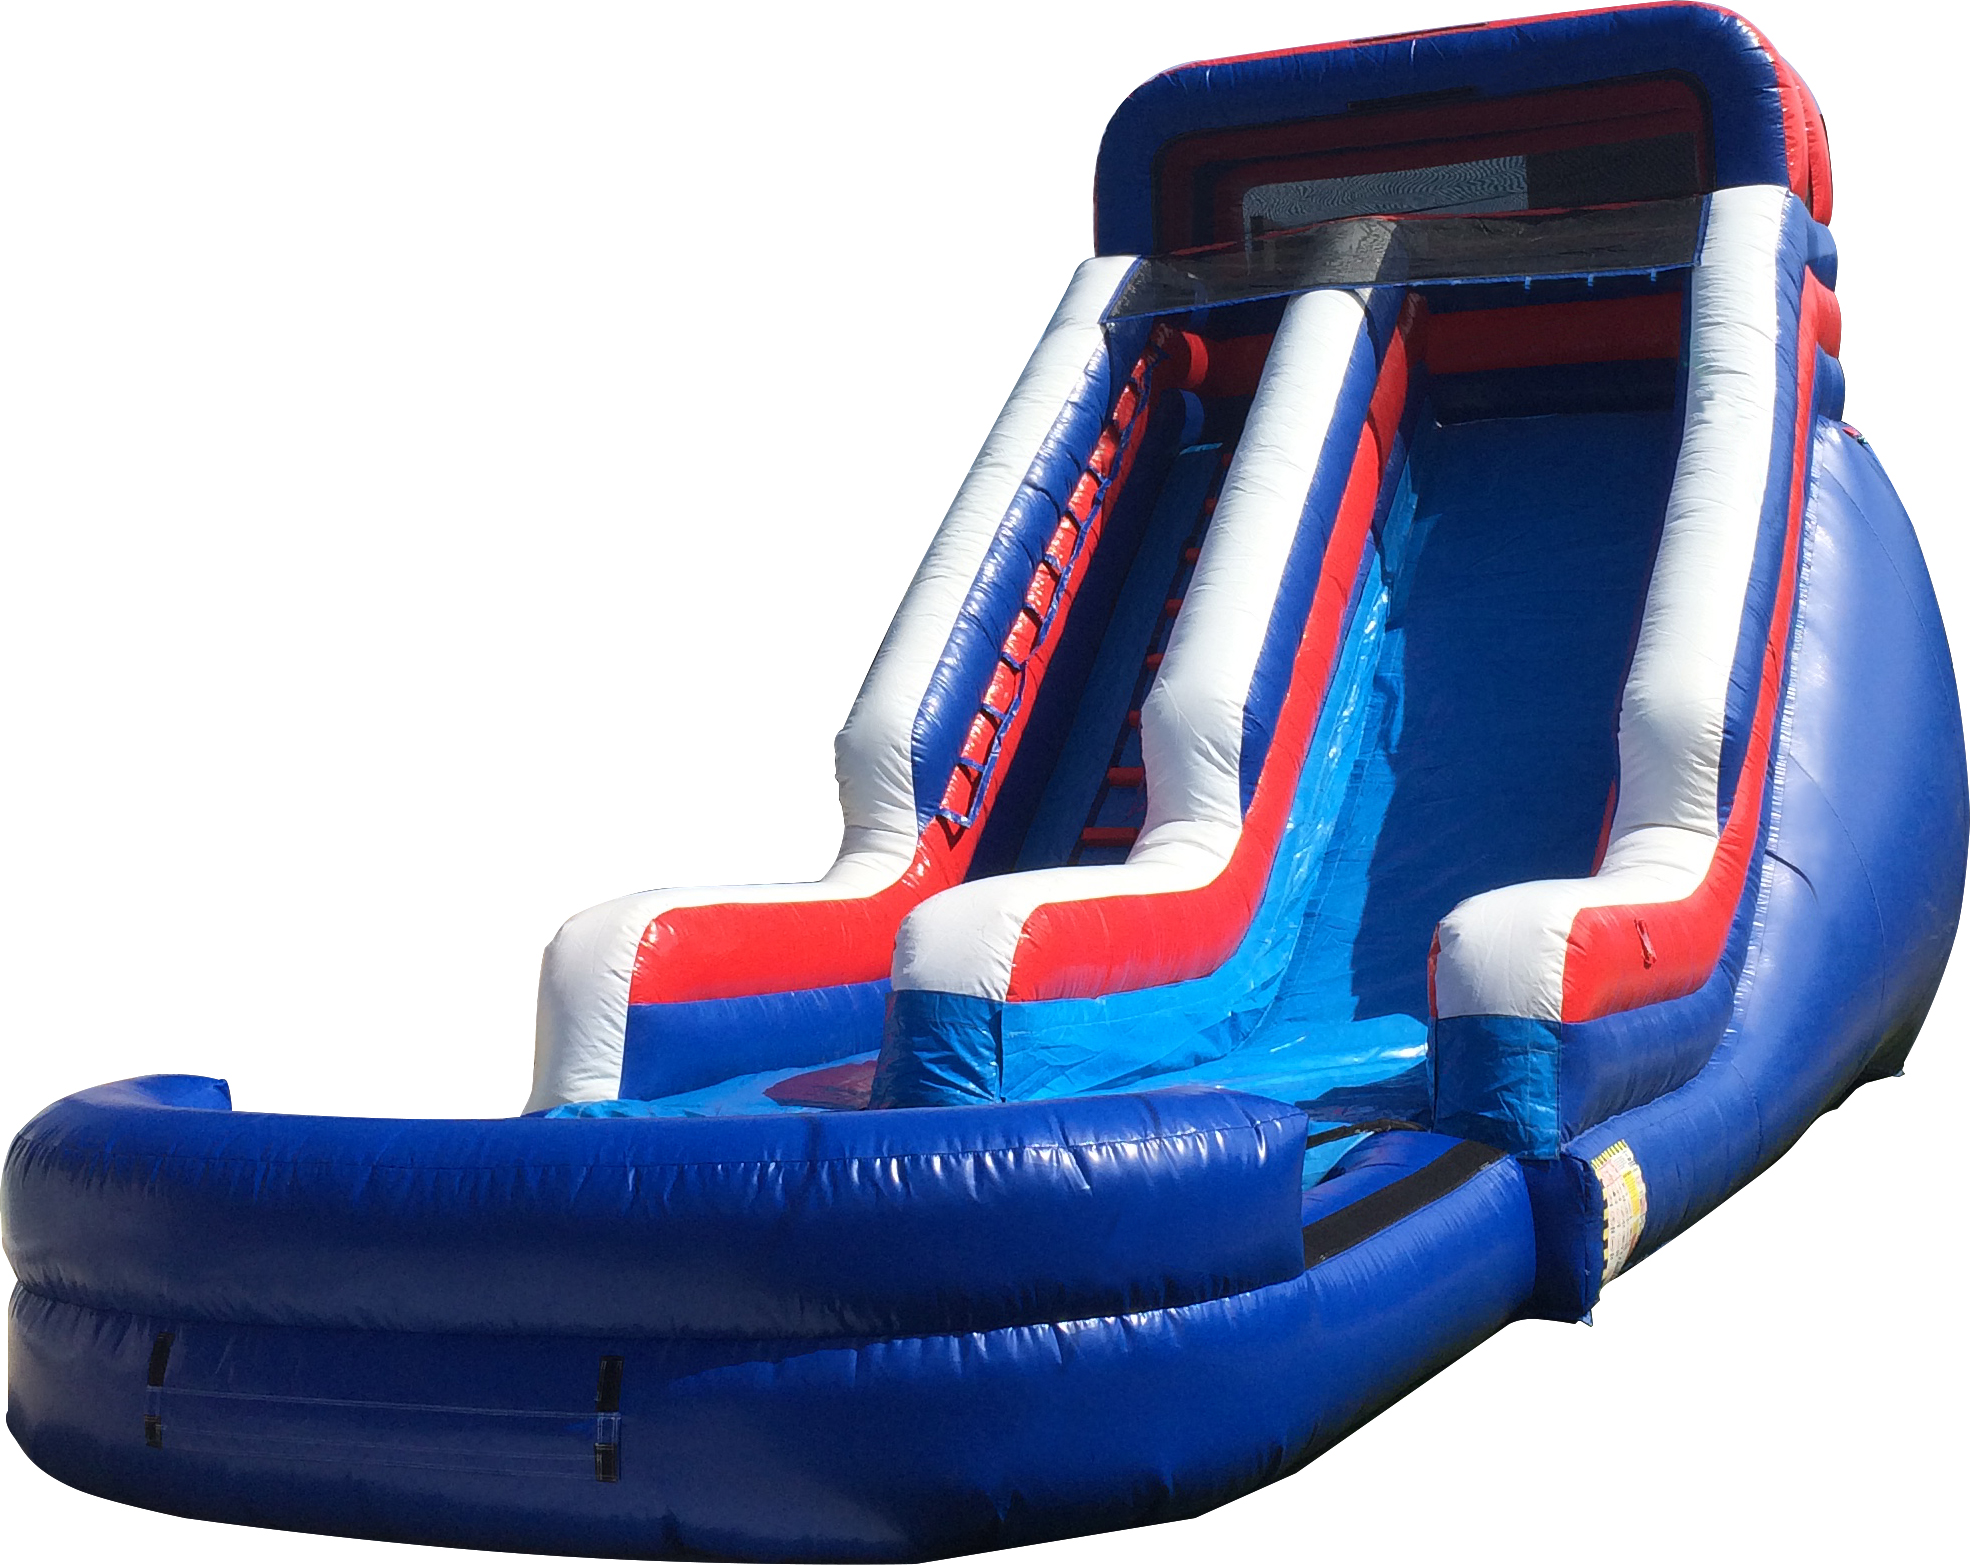 Patriotic Waterslide